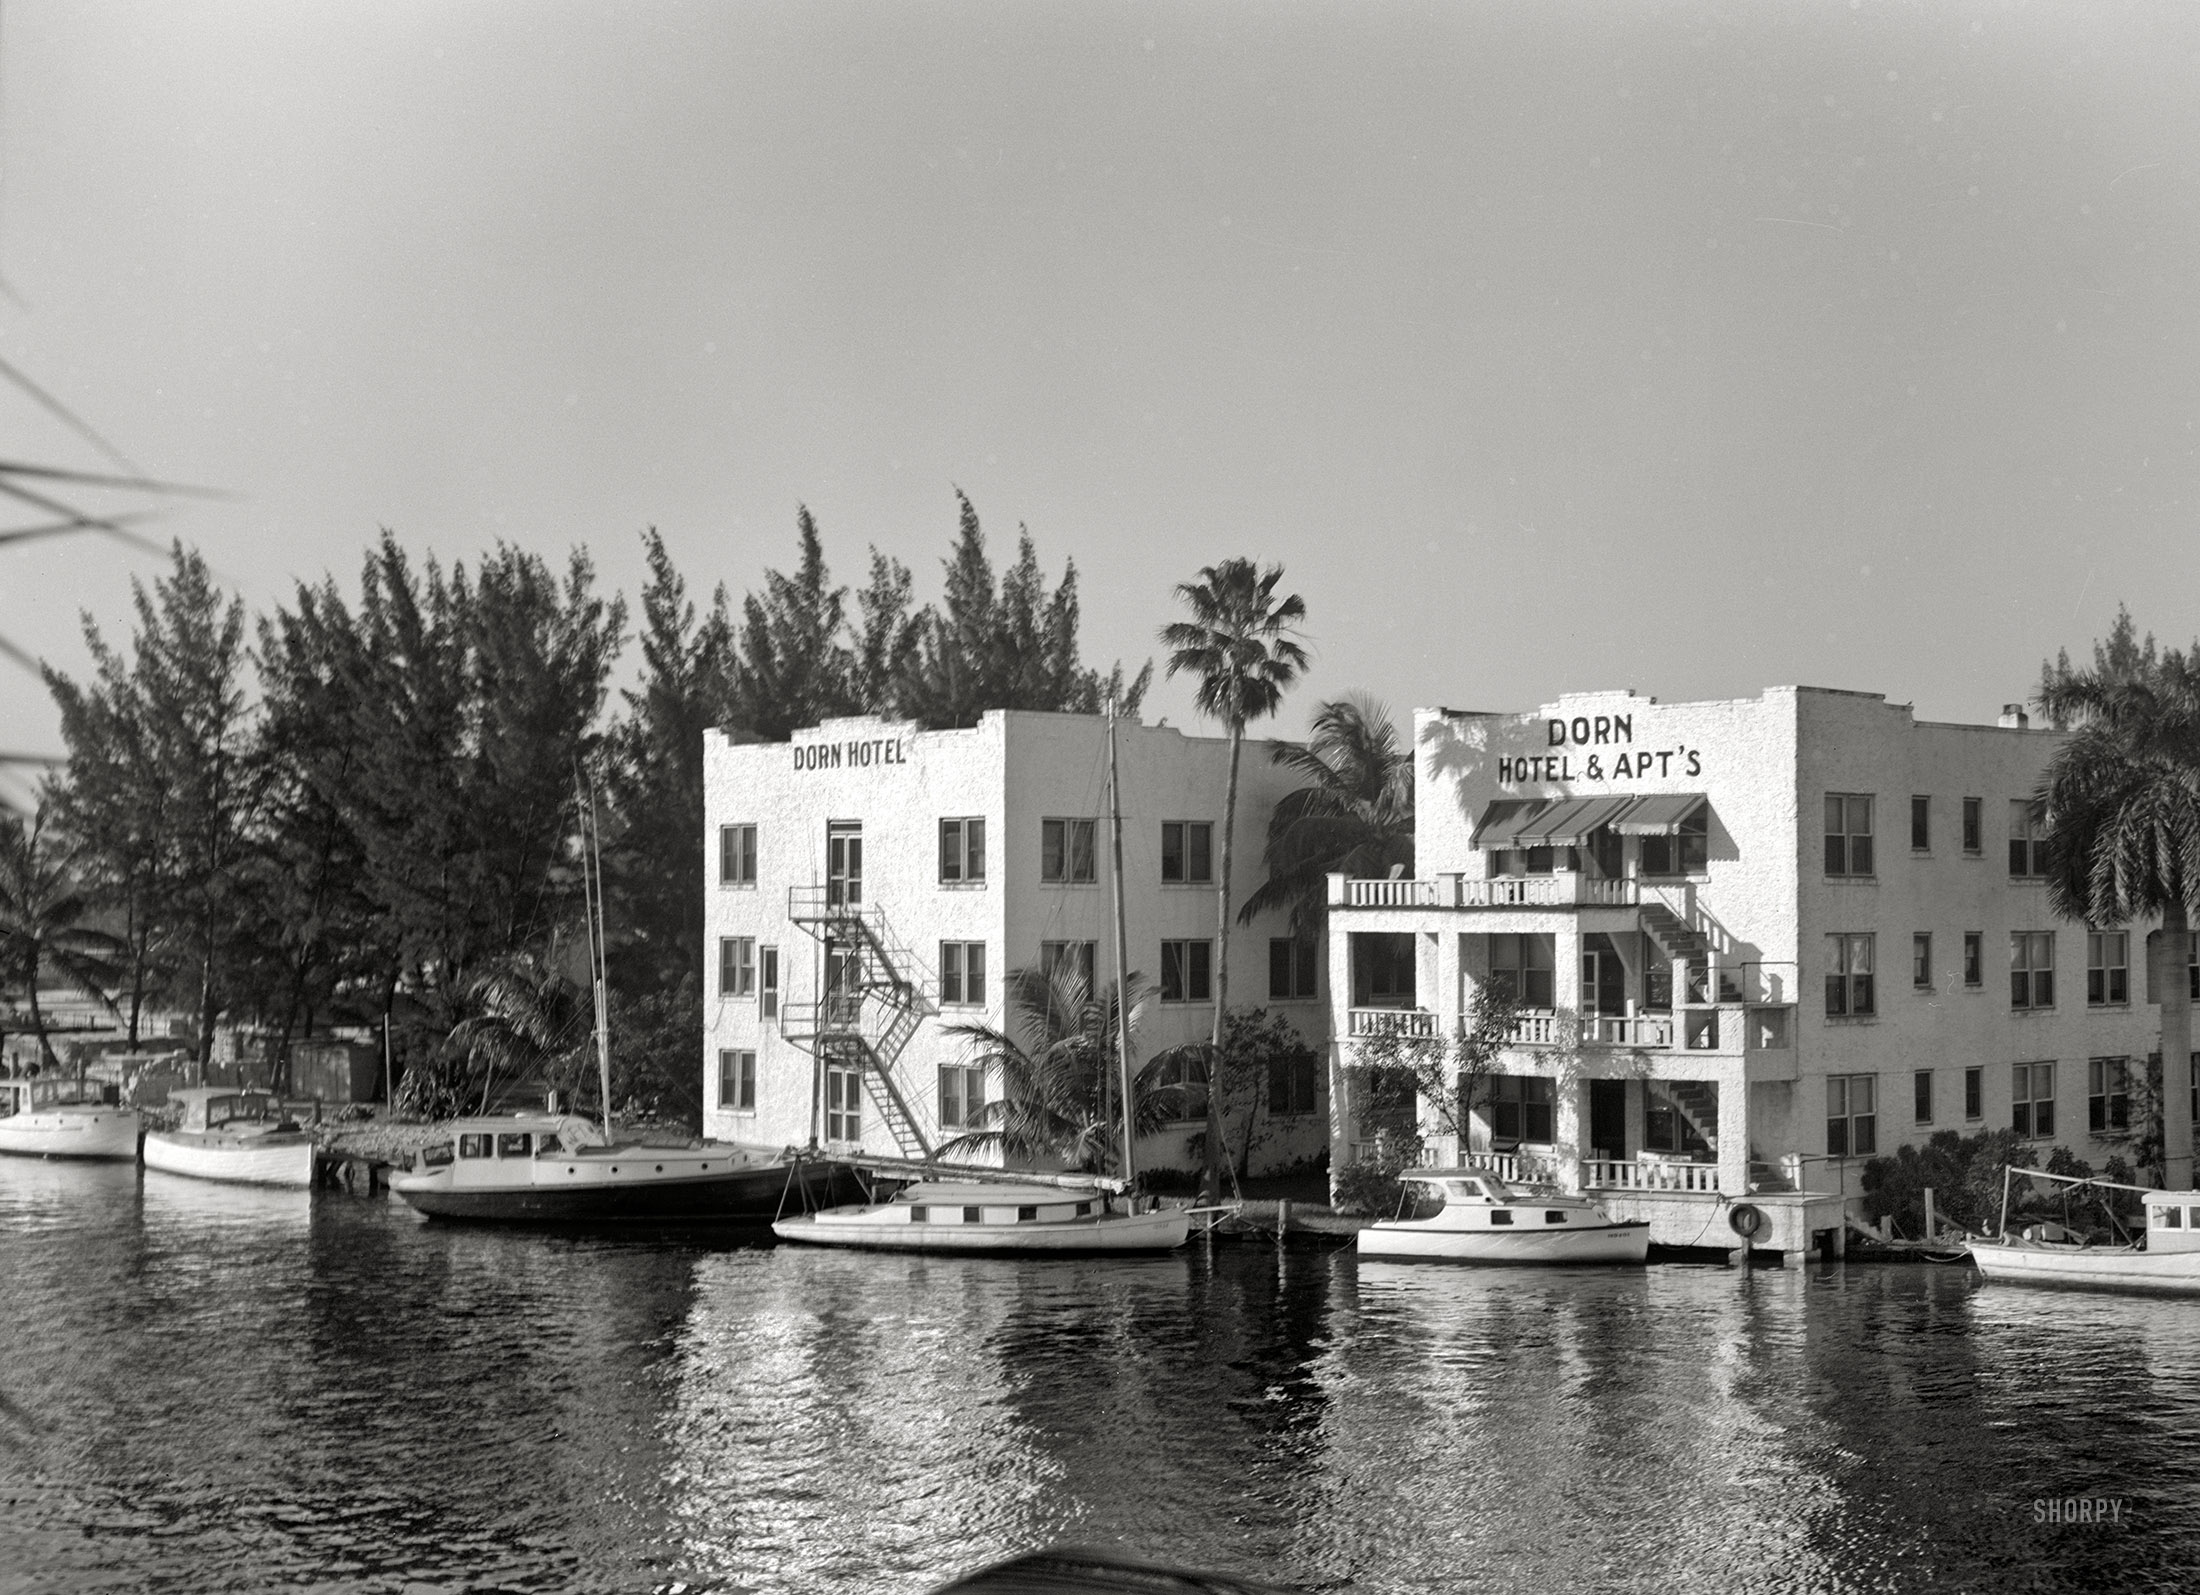 ... medium format nitrate negative by the mysterious daly click image